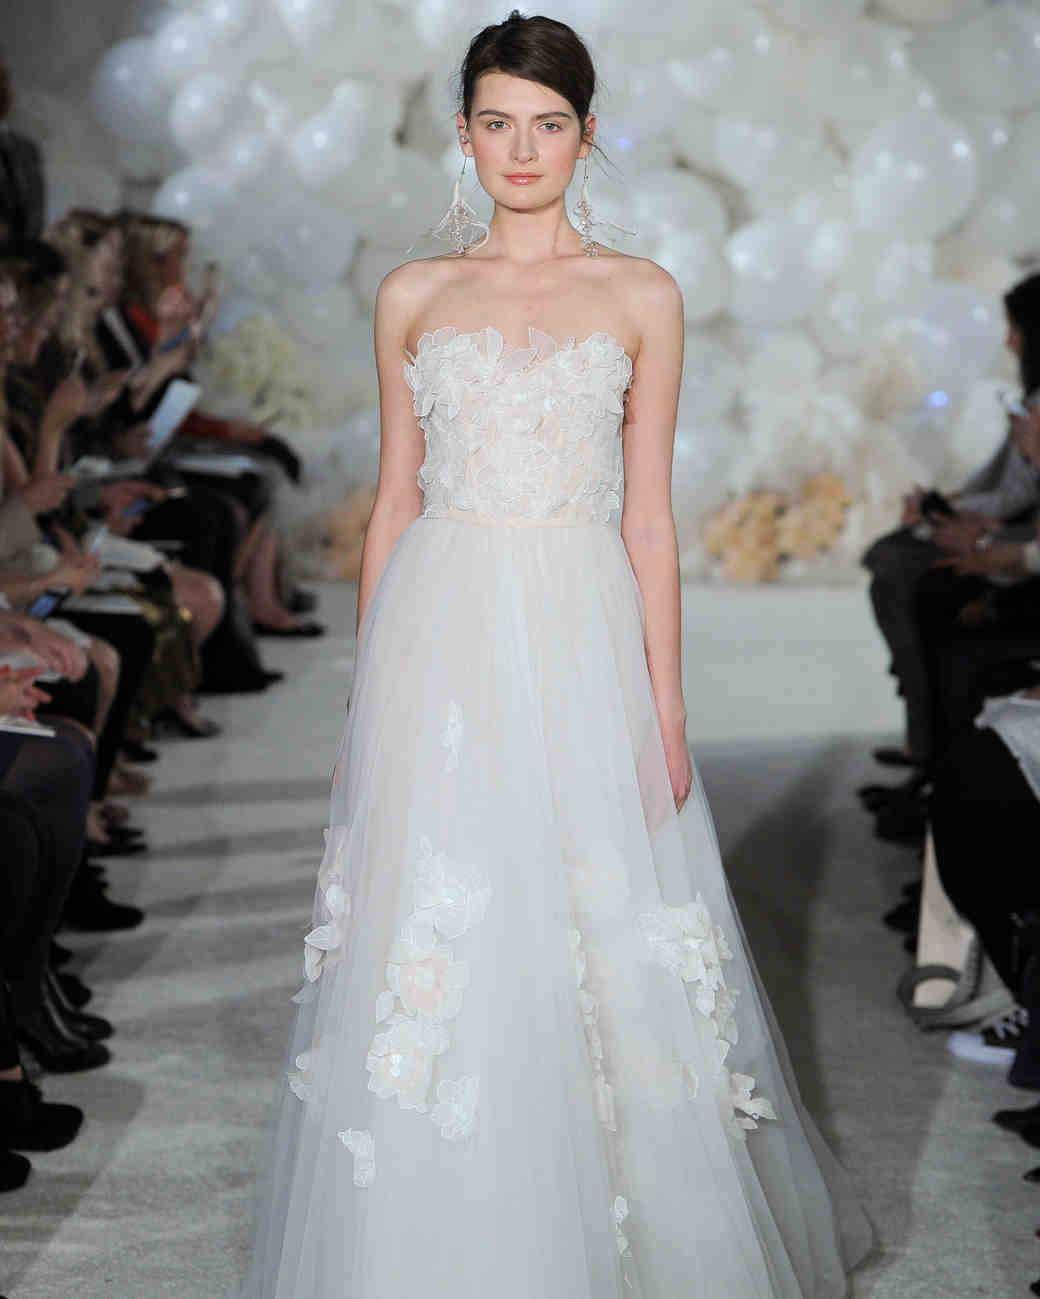 Mira zwillinger spring wedding dress collection martha